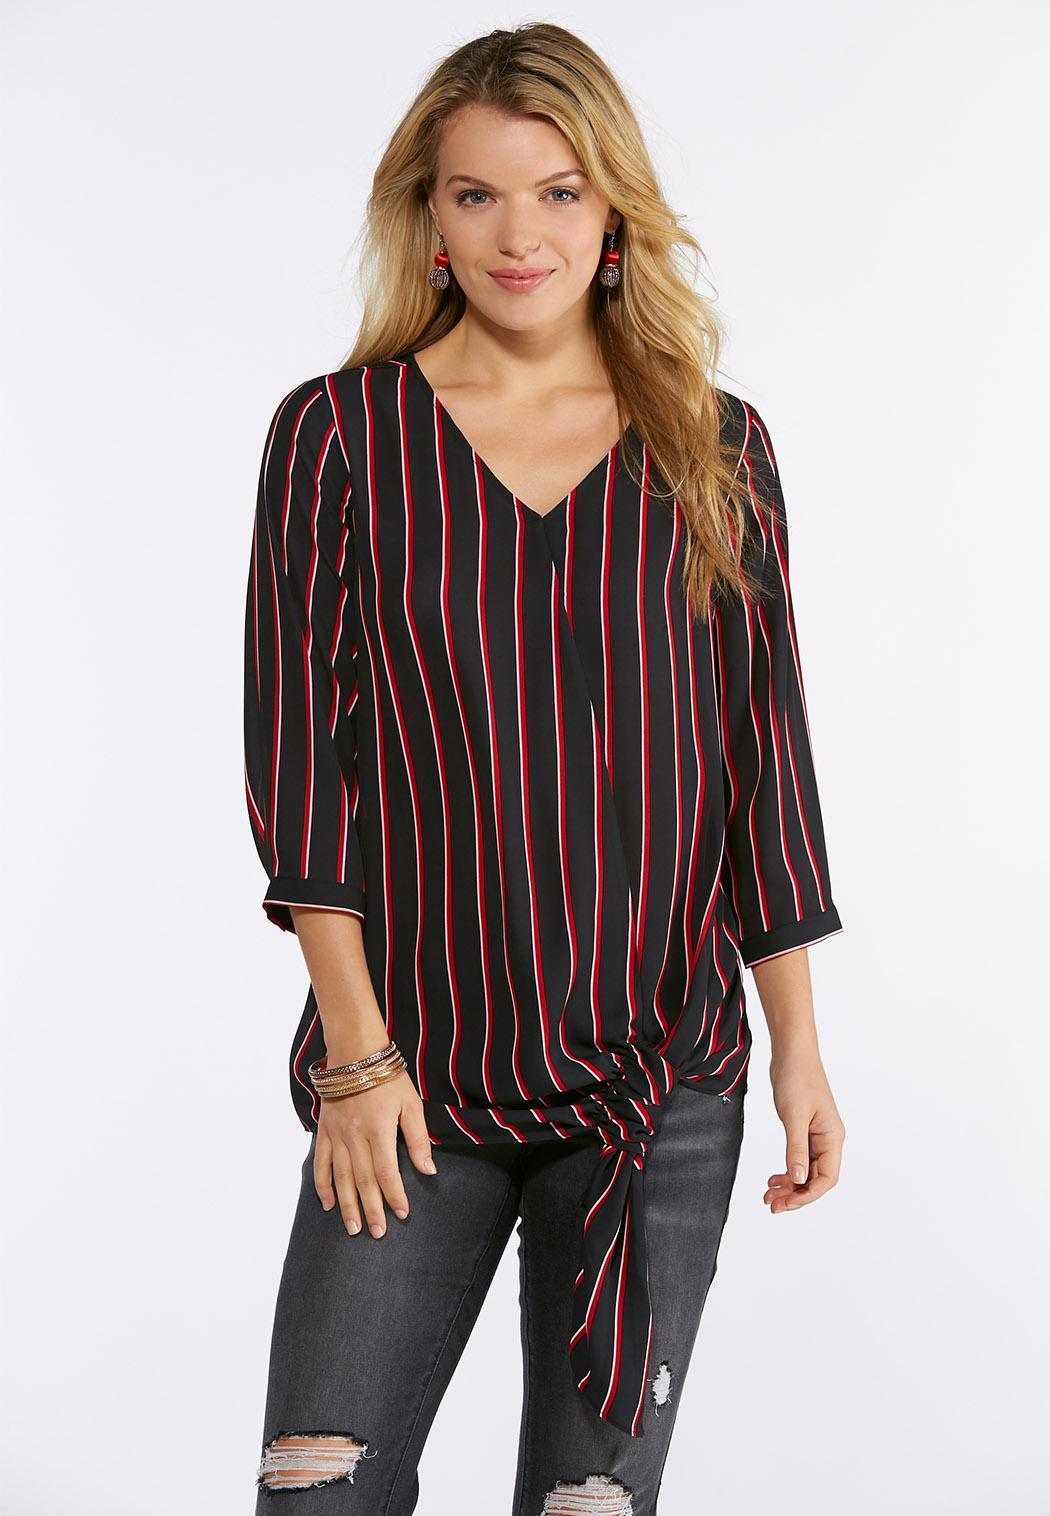 Plus Size Stripe Side Tie Top Shirts Blouses Cato Fashions